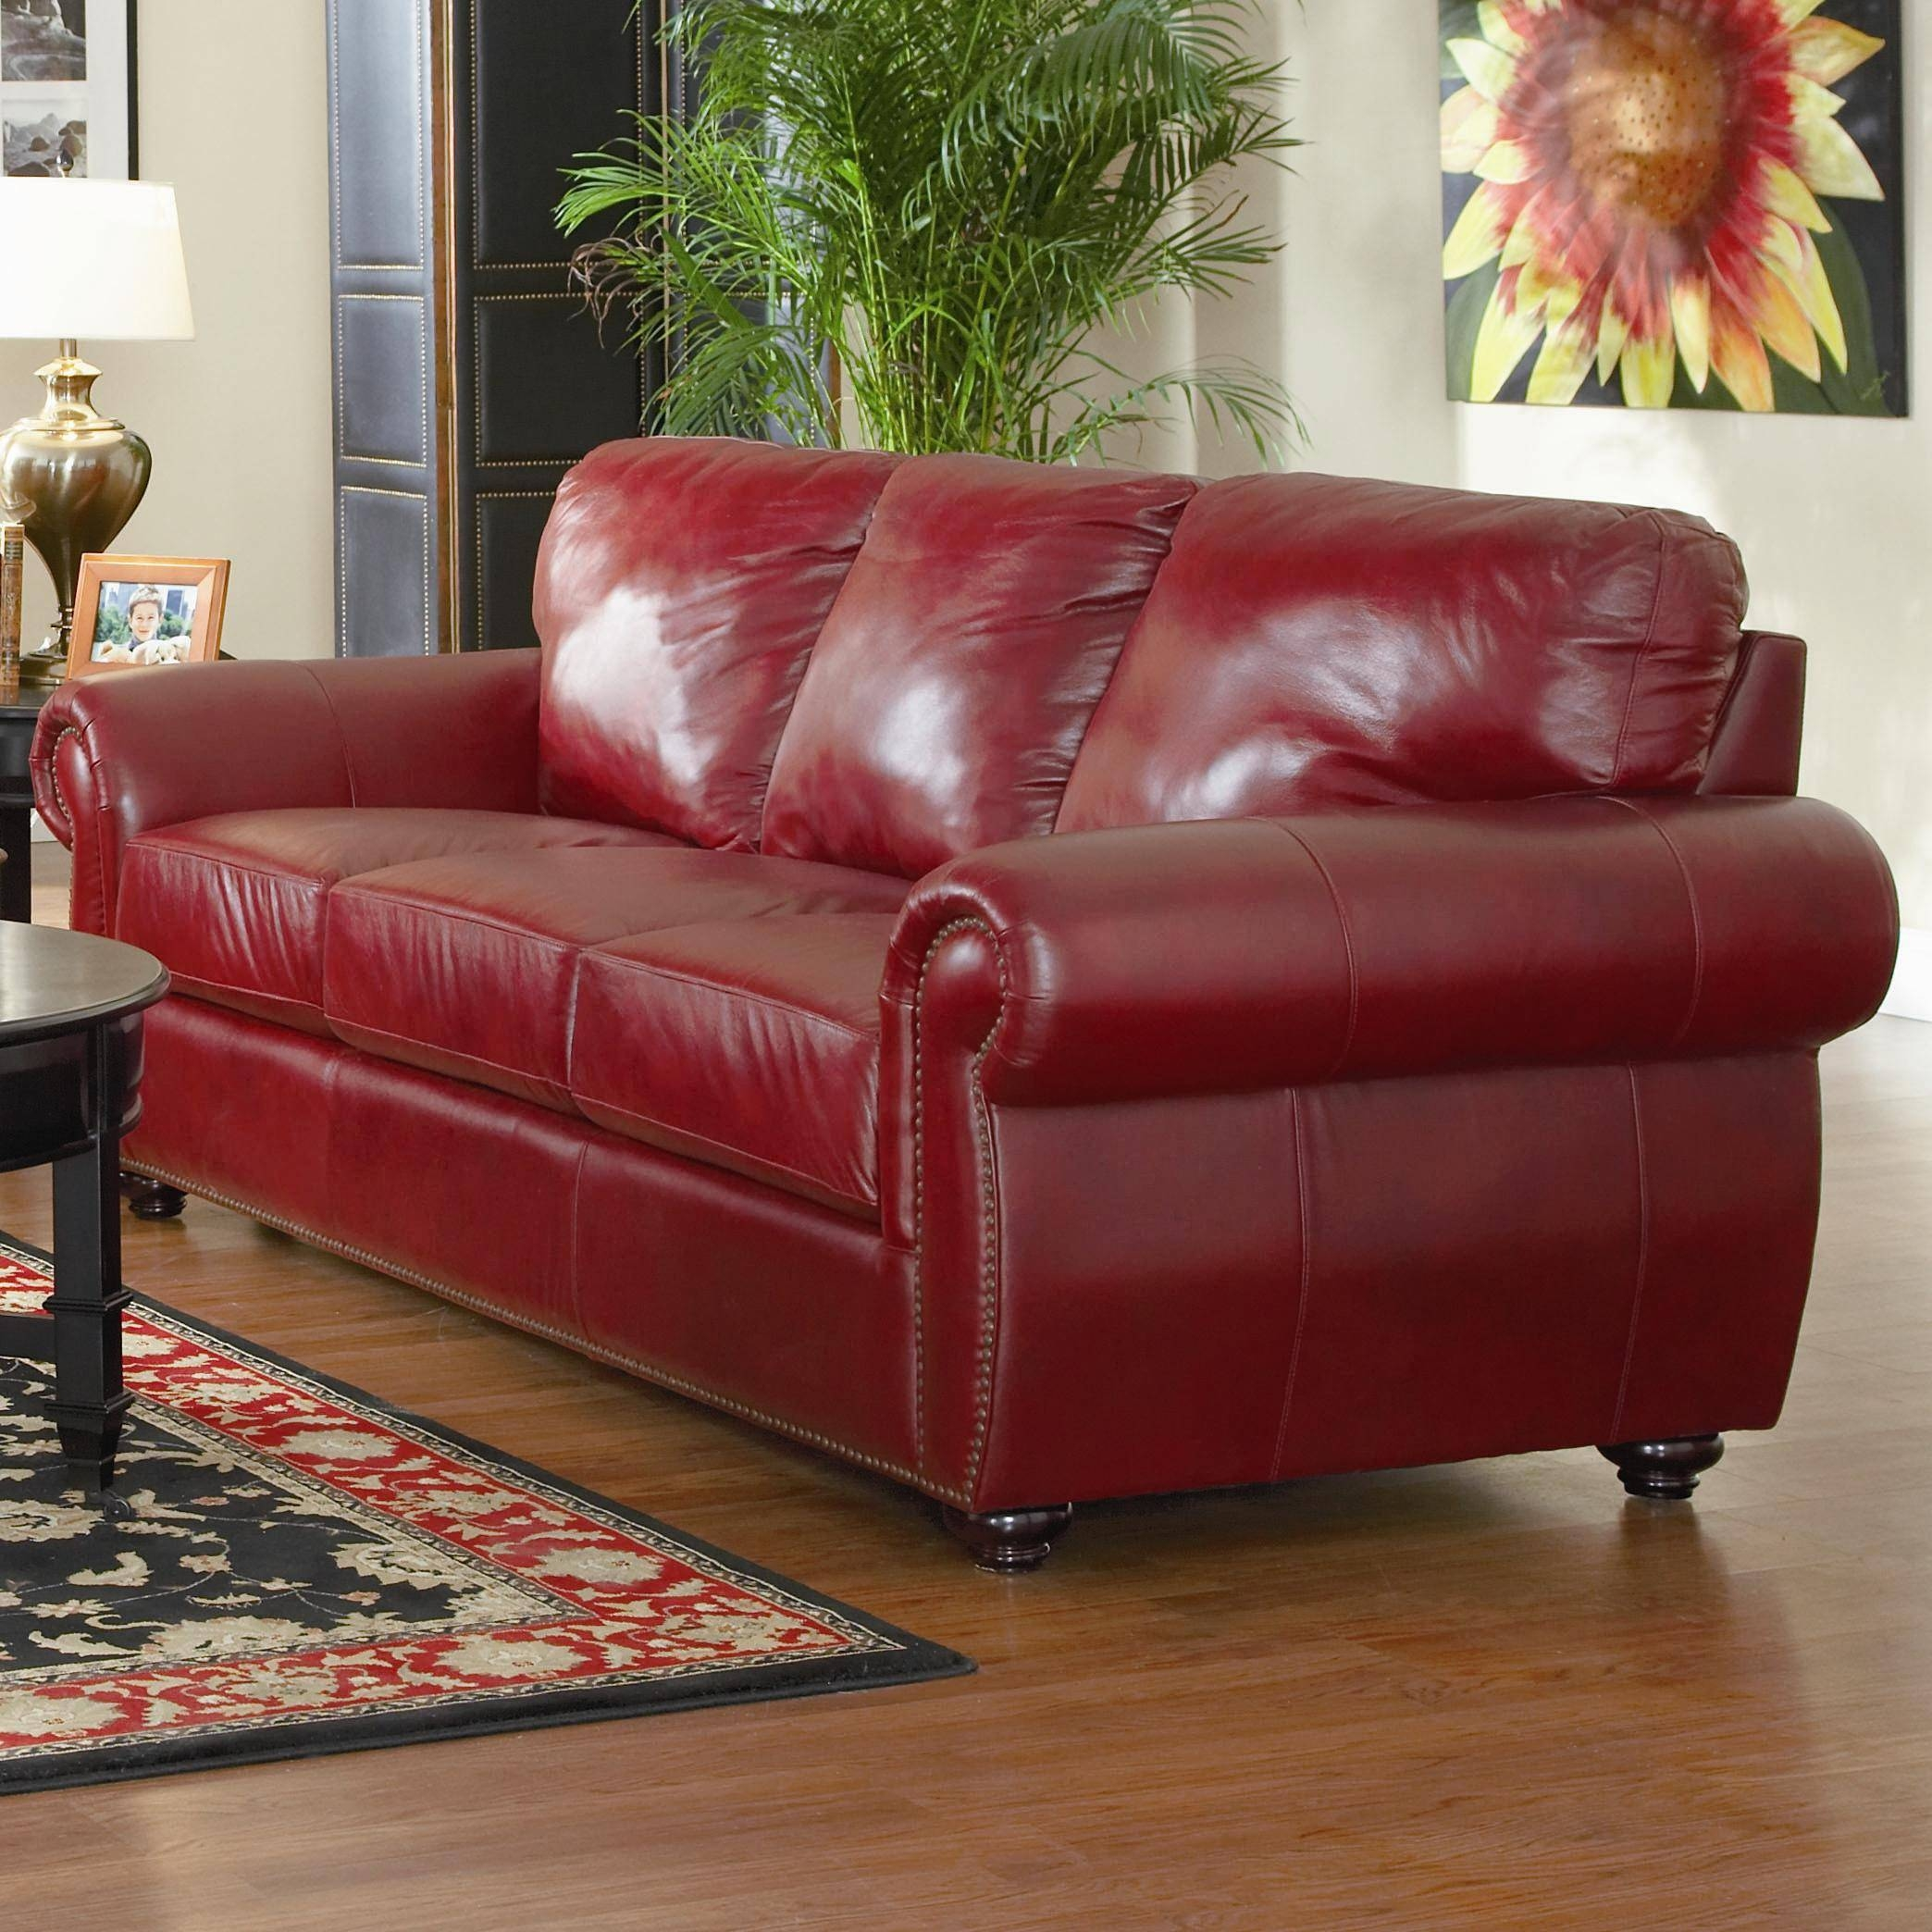 Burgundy Leather Sofa Set Burgundy Tufted Leather Sofa